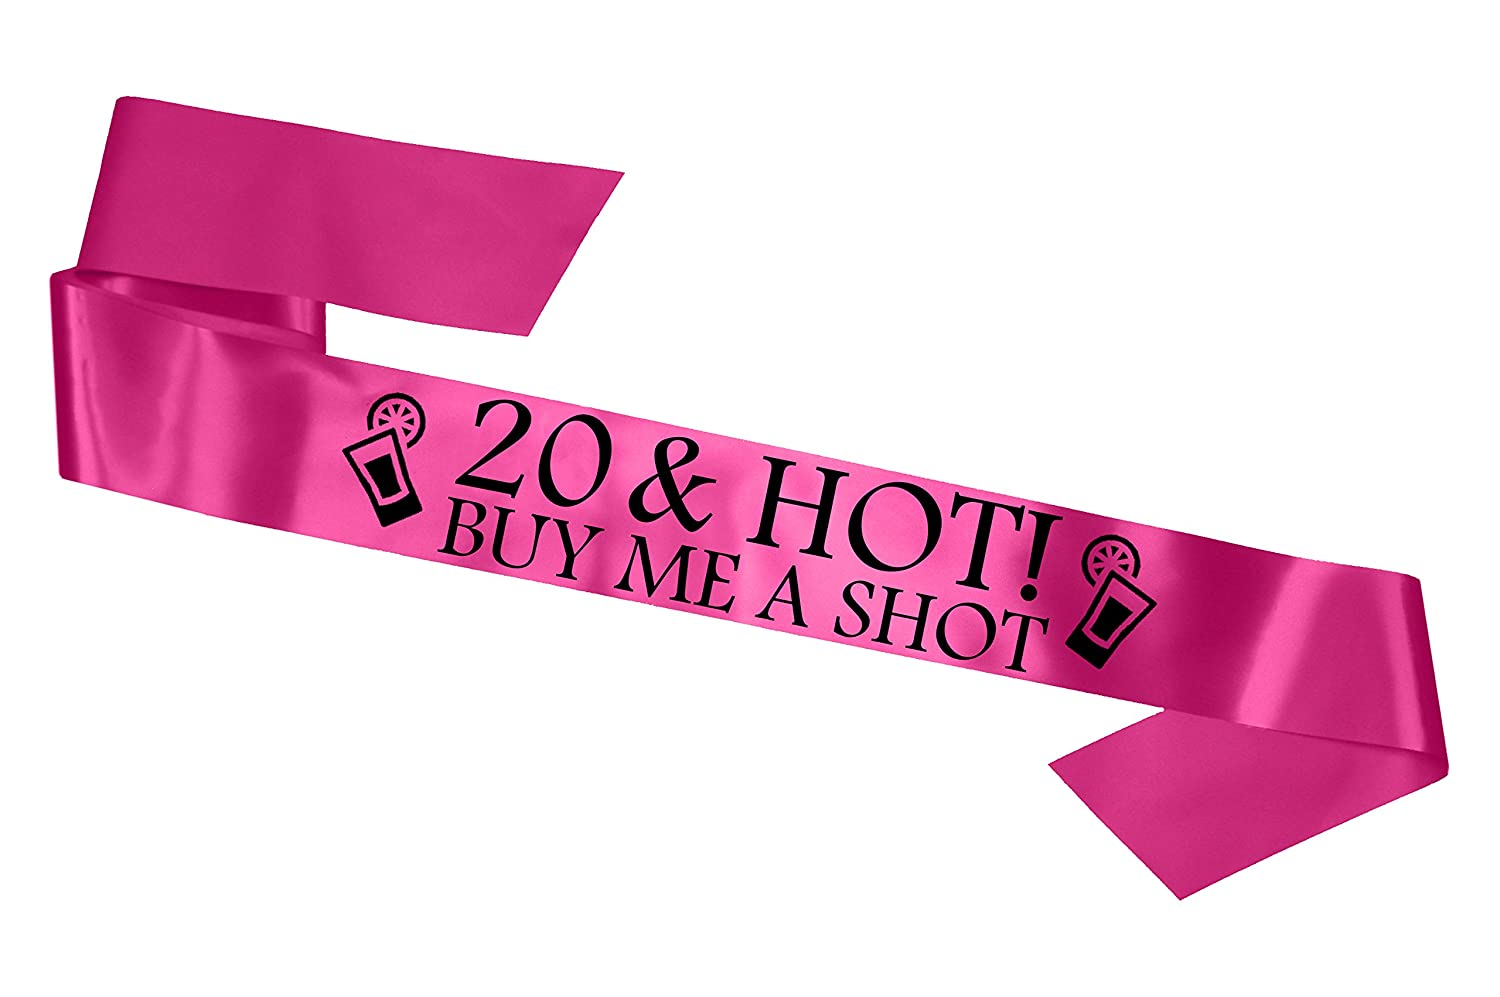 '20 & Hot - Buy me a Shot!' Party Sash 20th Birthday Night Going Out Sashes Accessory Gift Badge Novelty - Hot Pink Fancy Pants Store Ltd